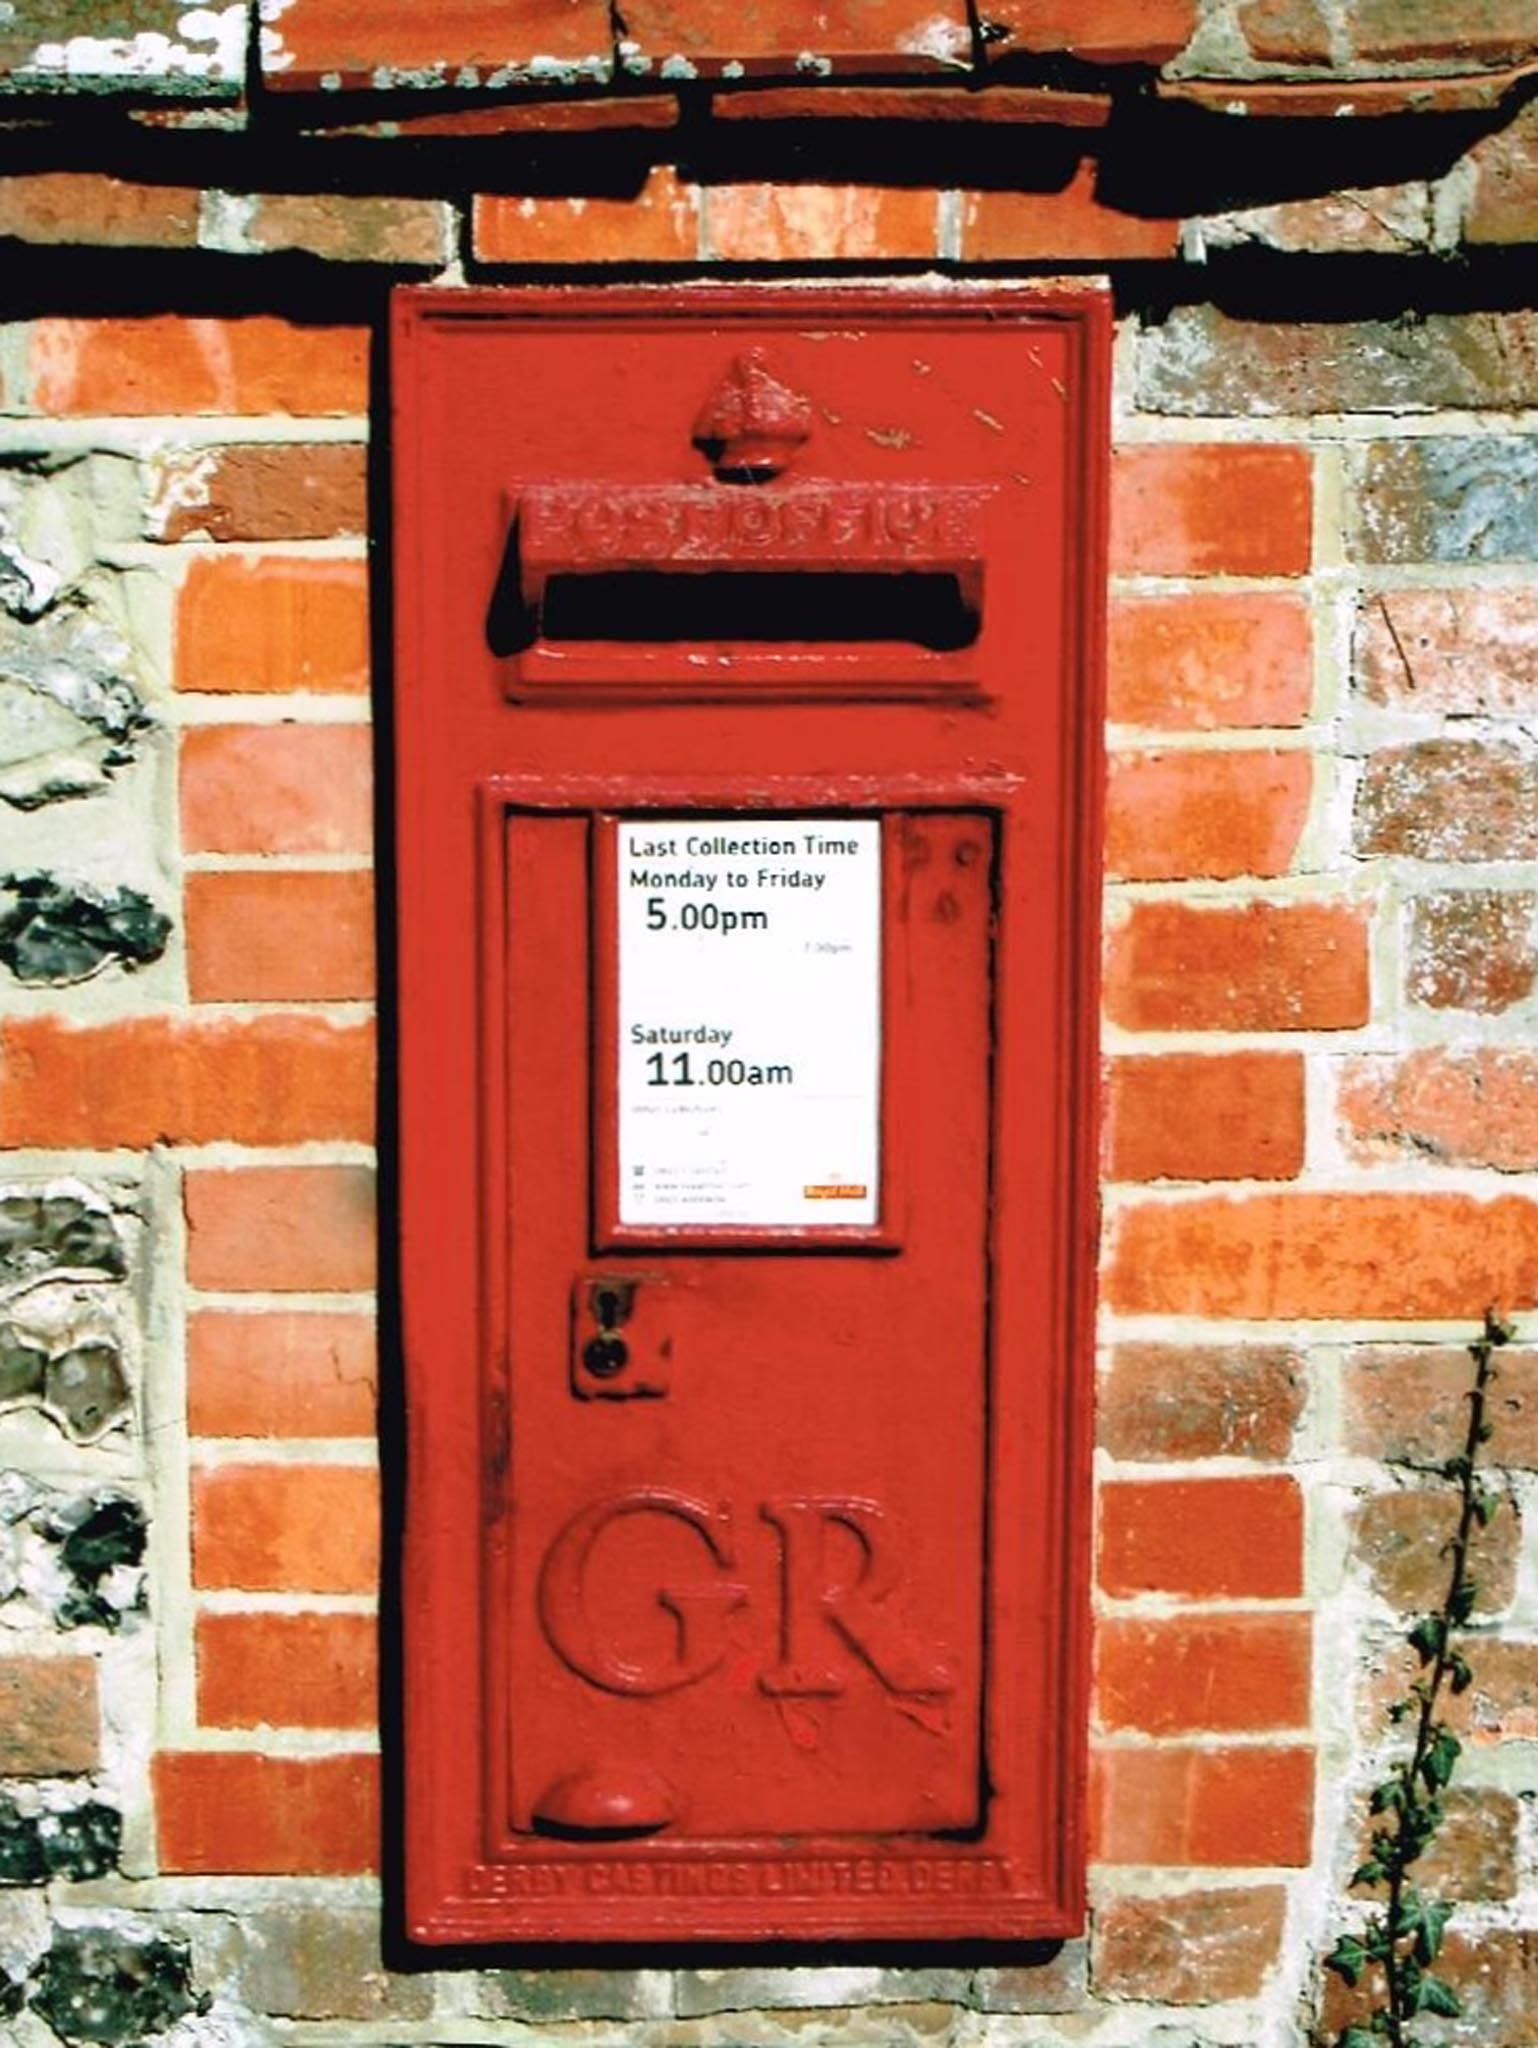 GR wall box 1930s, South England. Simon Vaughan Winter